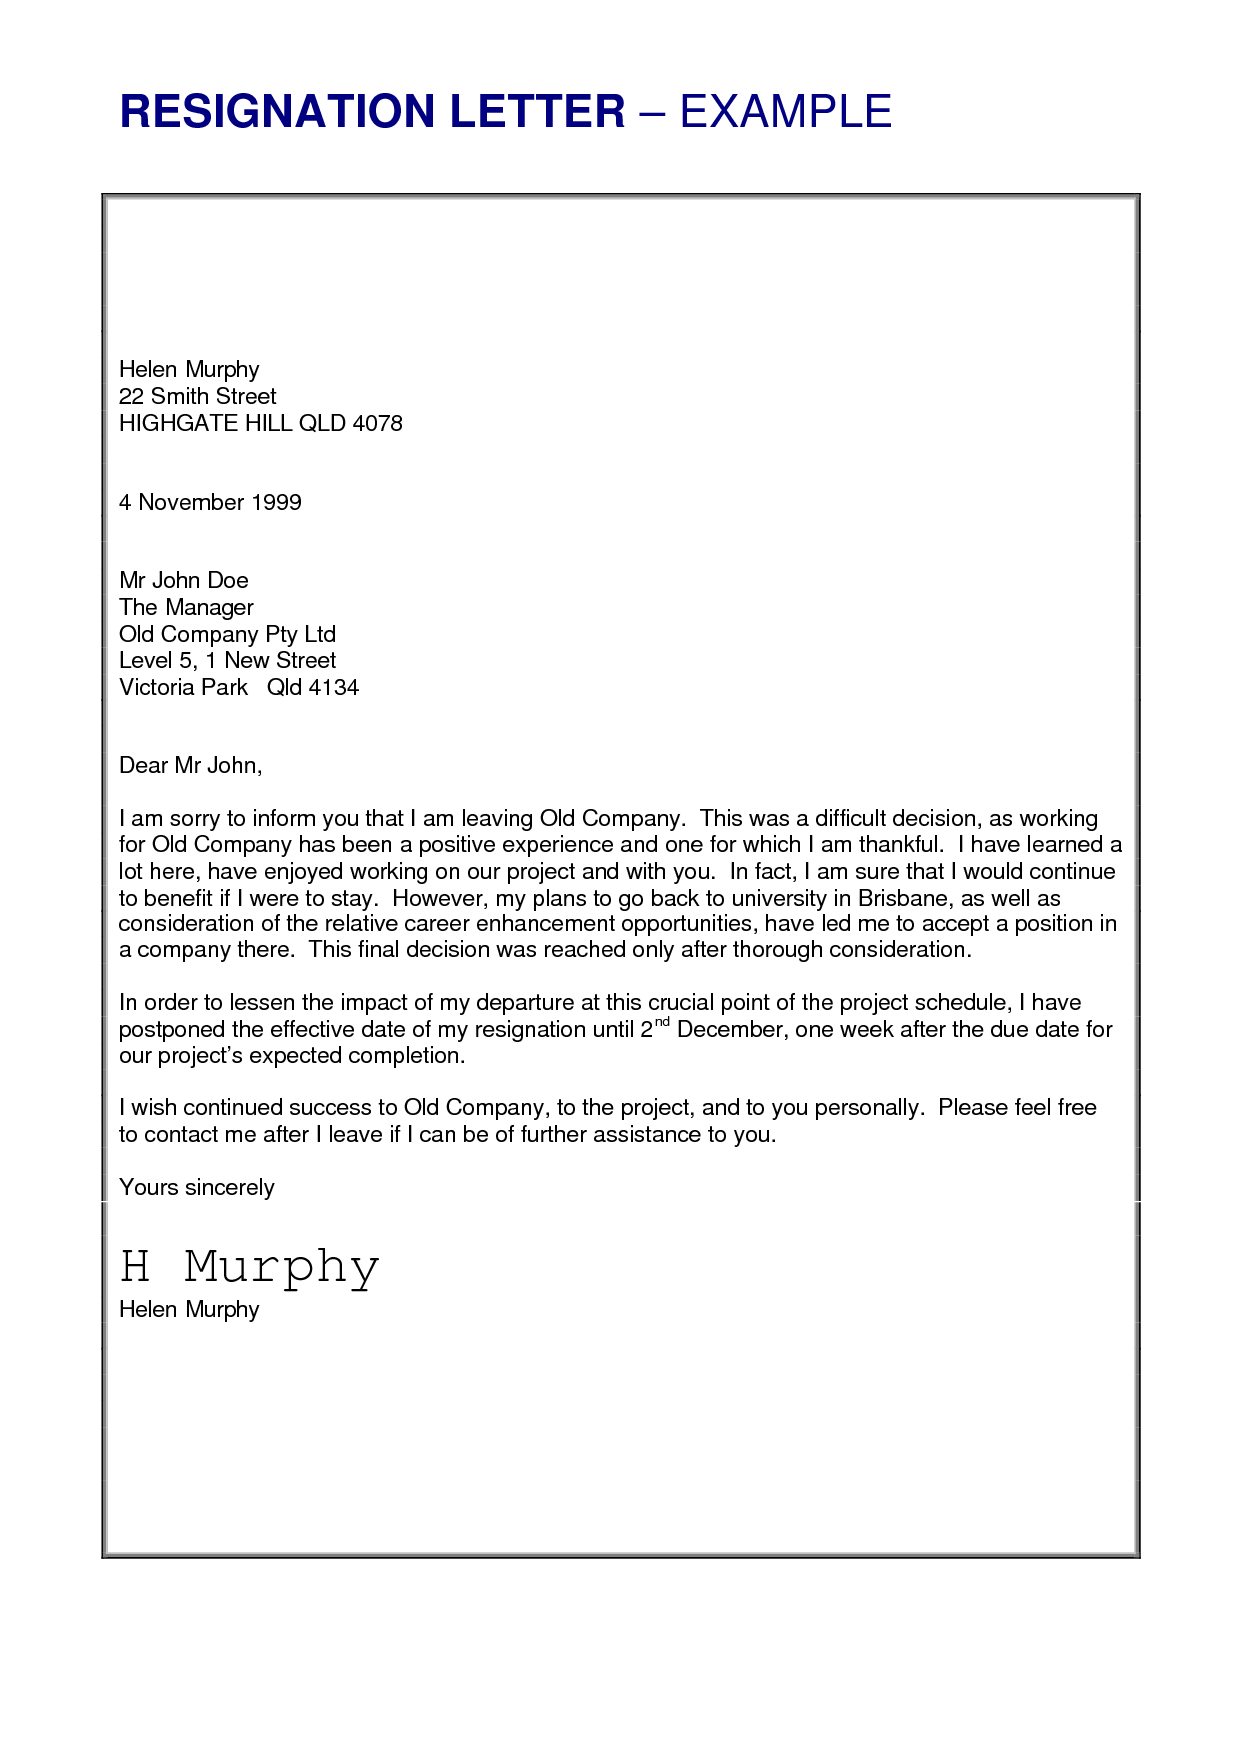 job resignation letter sample loganun blog best letter job resignation letter sample loganun blog